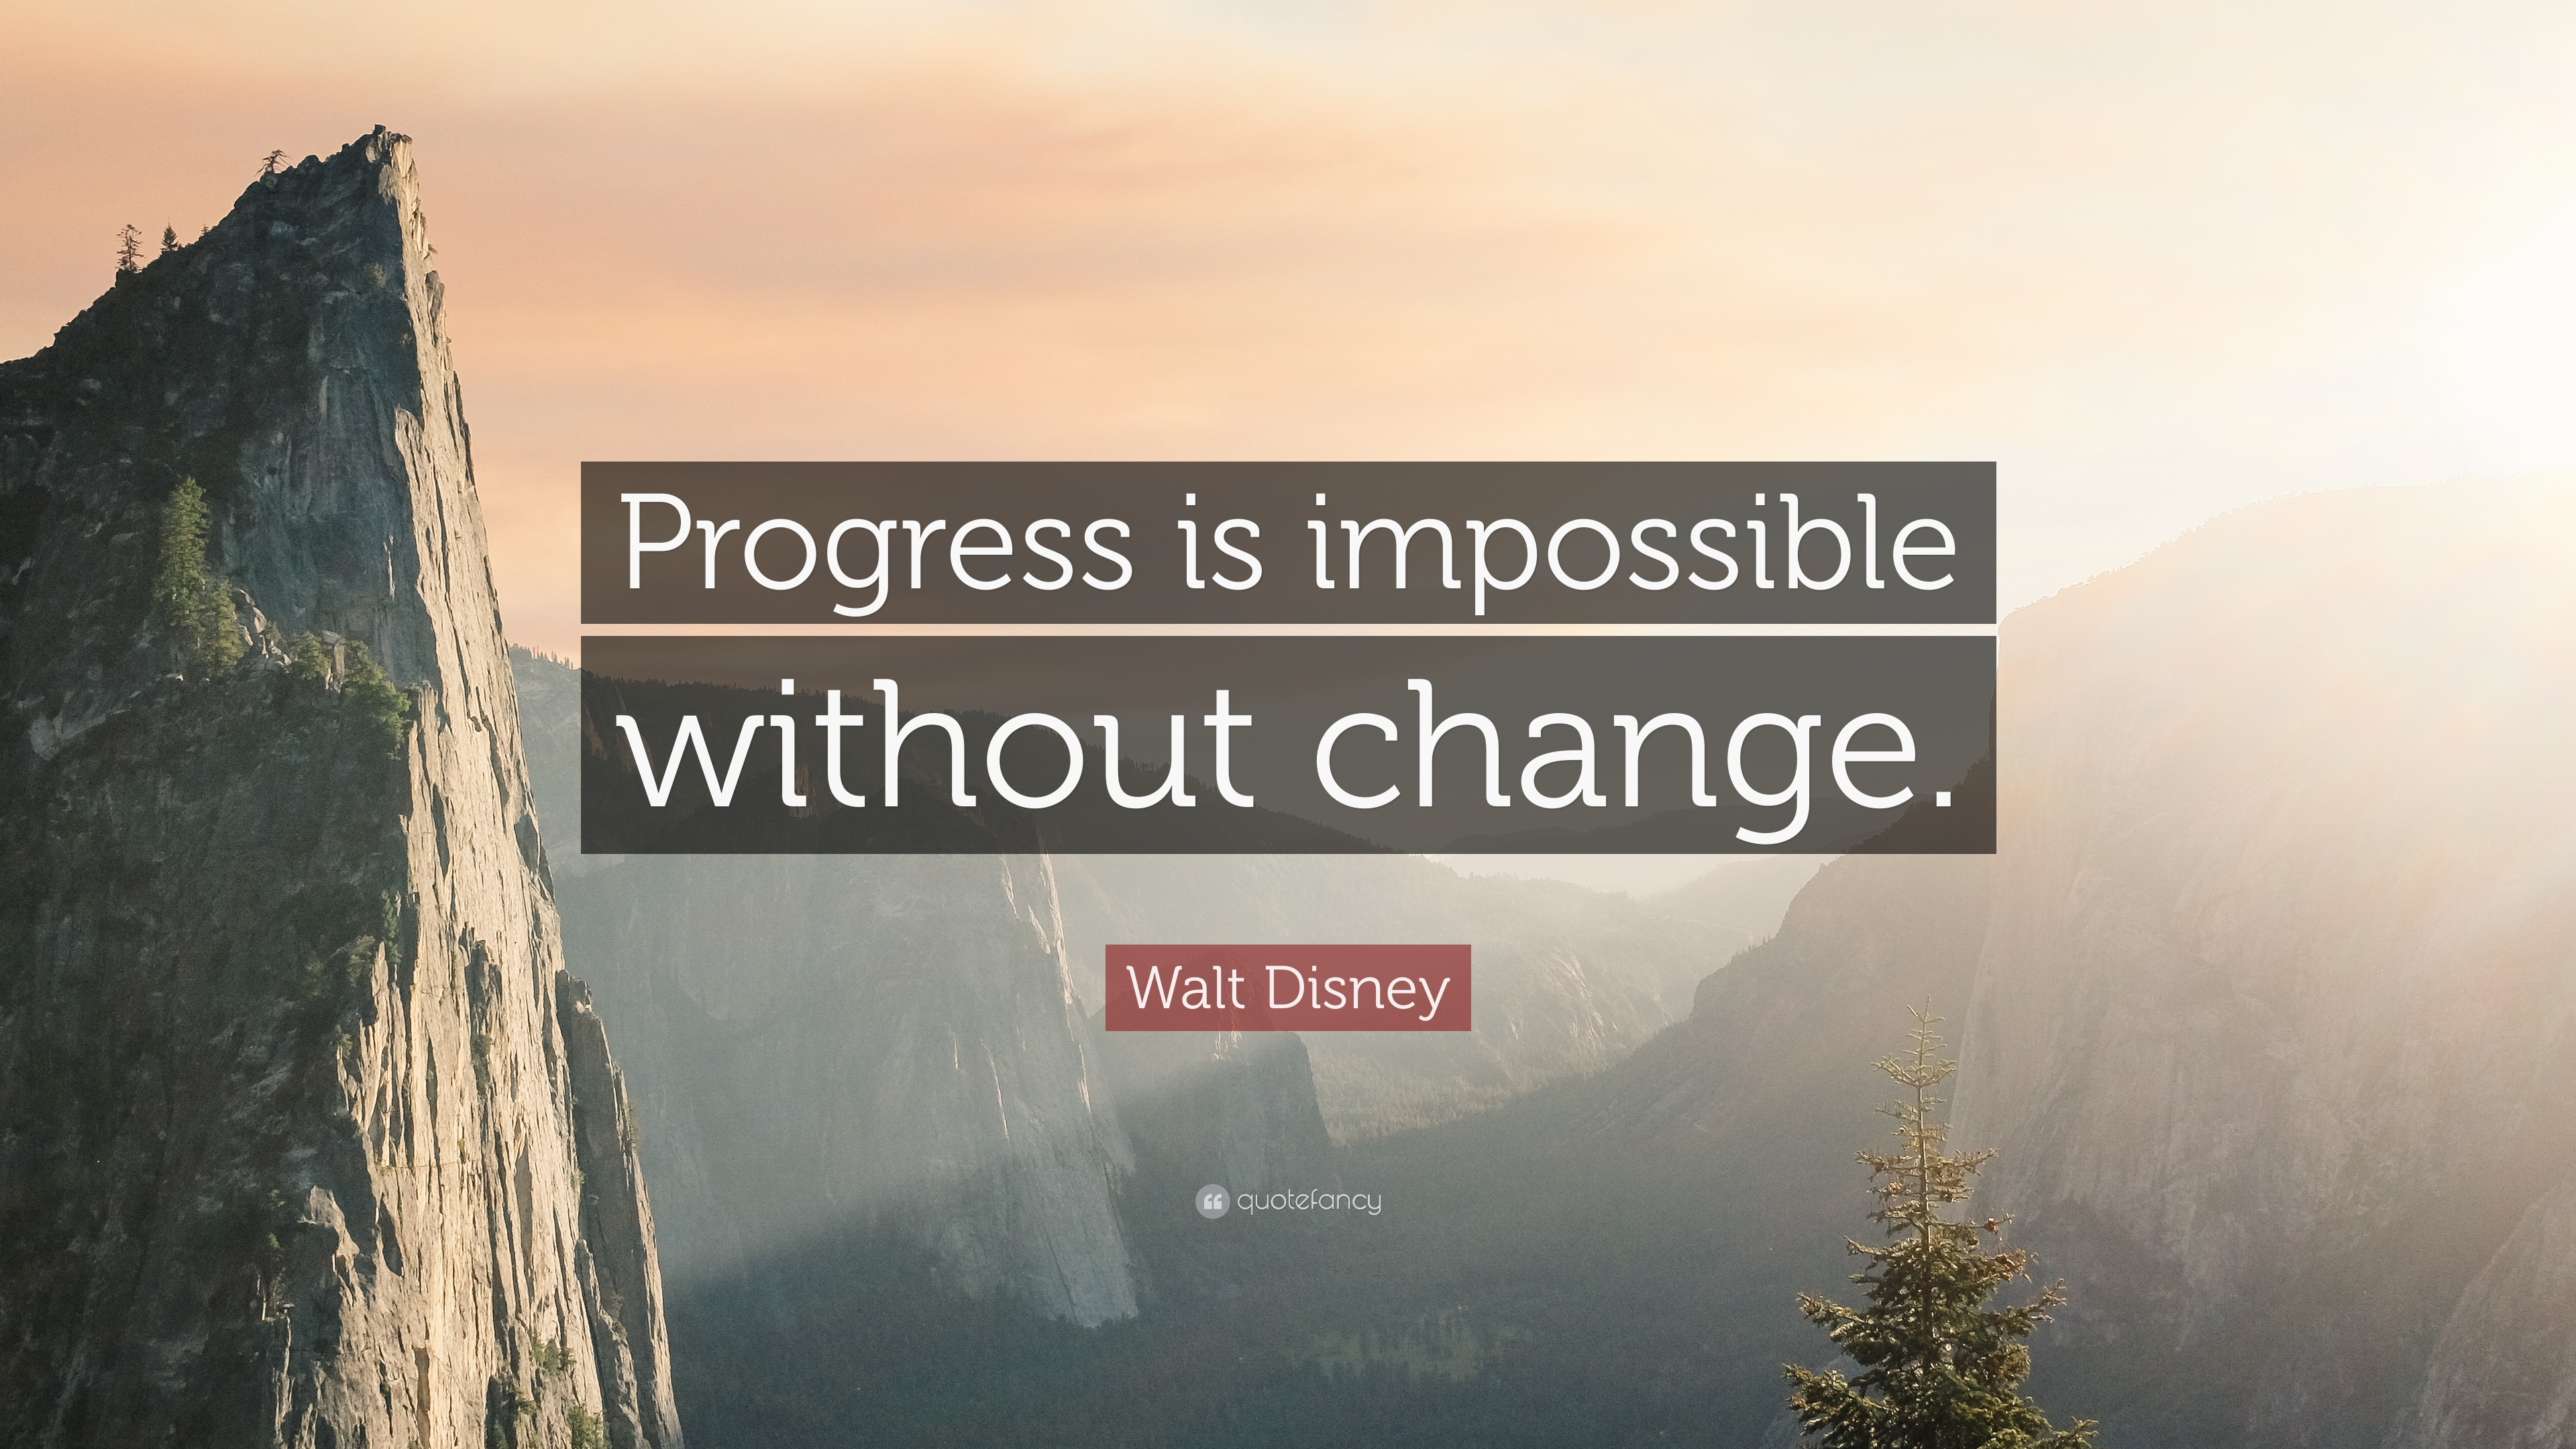 Quotes About Progress Progress Quotes 40 Wallpapers  Quotefancy